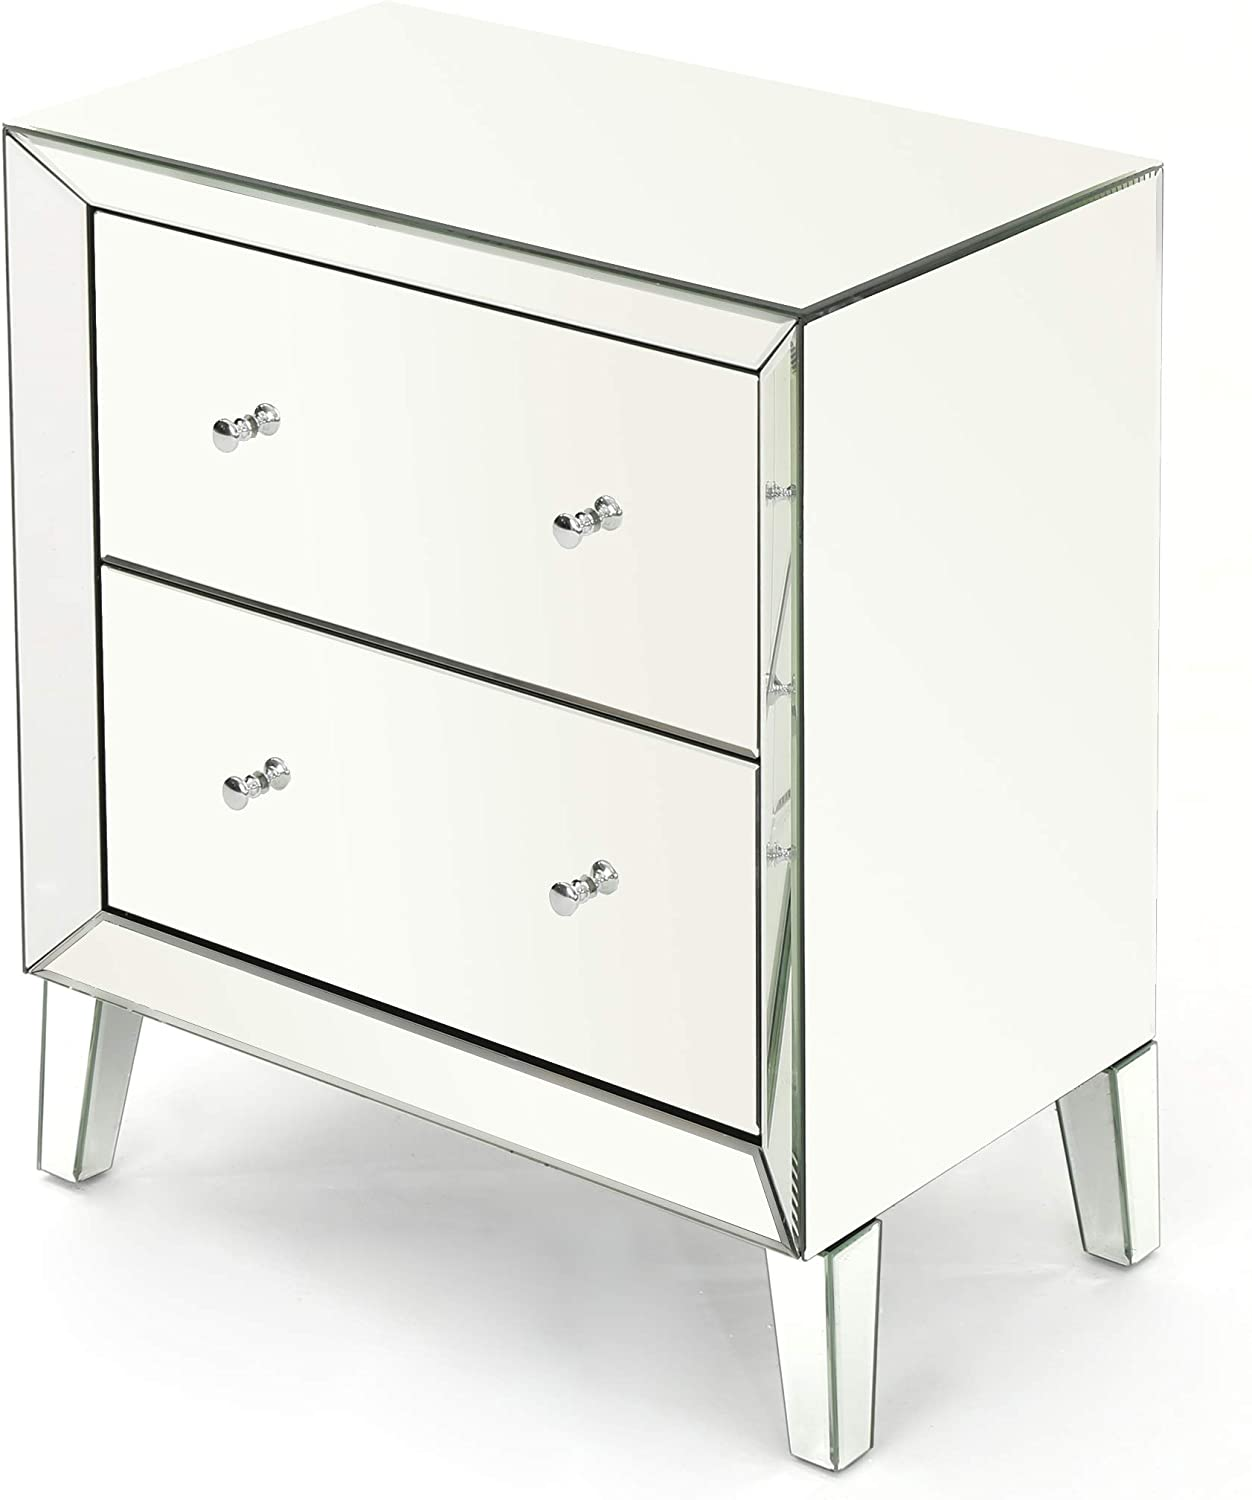 Christopher Knight Home Jeremye Mirrored 2-Drawer Cabinet with Faux Wood Frame, Silver Finished